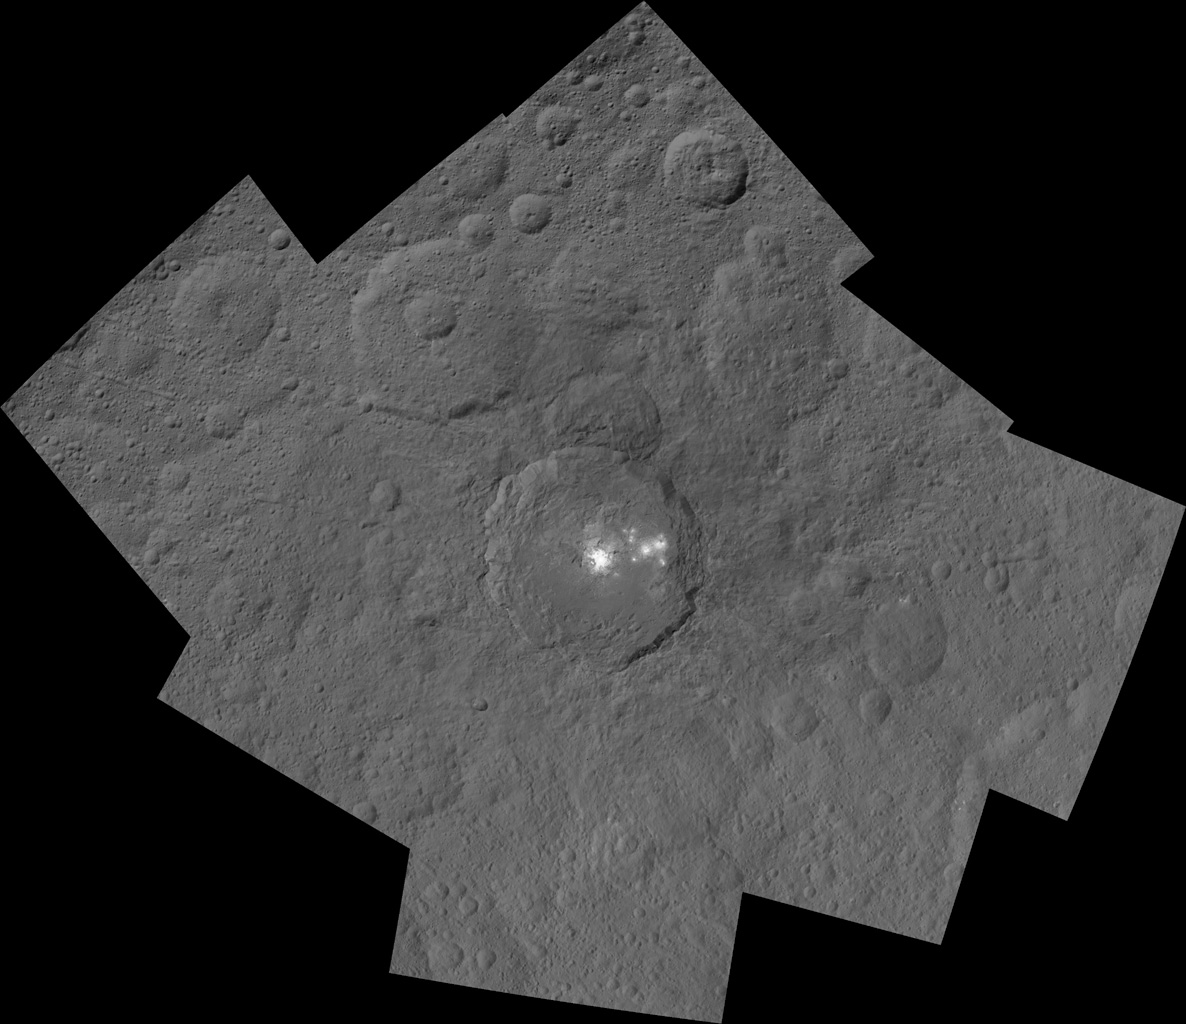 This mosaic shows Ceres' Occator crater and surrounding terrain from an altitude of 915 miles (1,470 kilometers), as seen by NASA's Dawn spacecraft. Occator is 60 miles (90 kilometers) across and 2 miles (4 kilometers) deep.